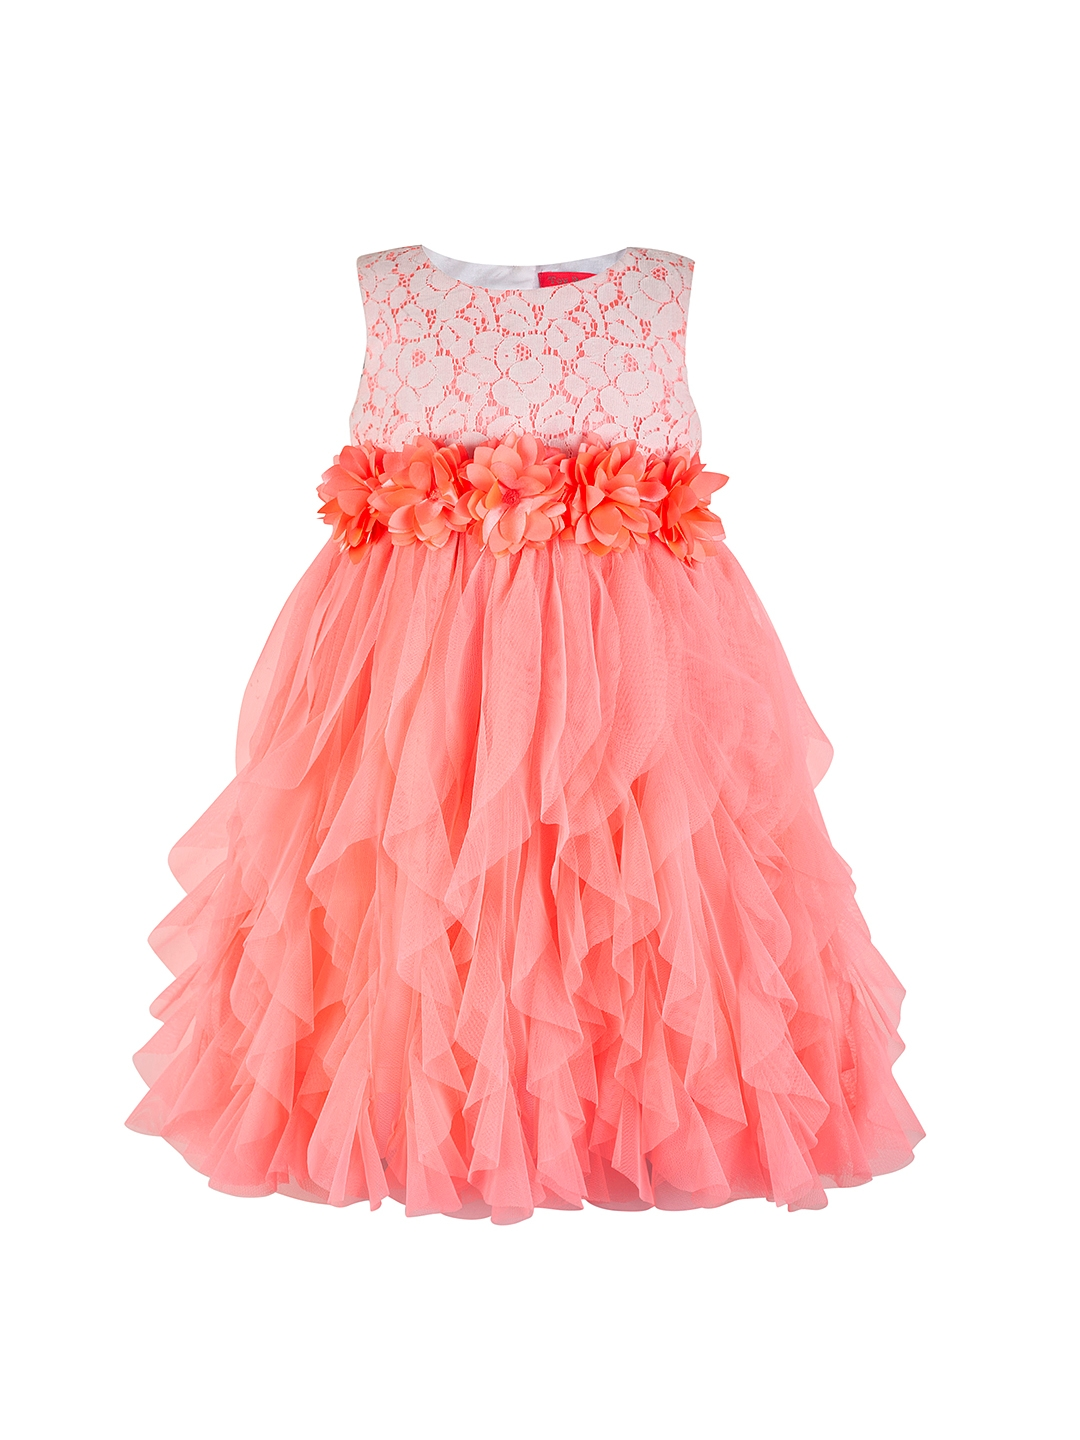 Buy Toy Balloon Kids Girls Coral Orange Lace Fit Amp Flare